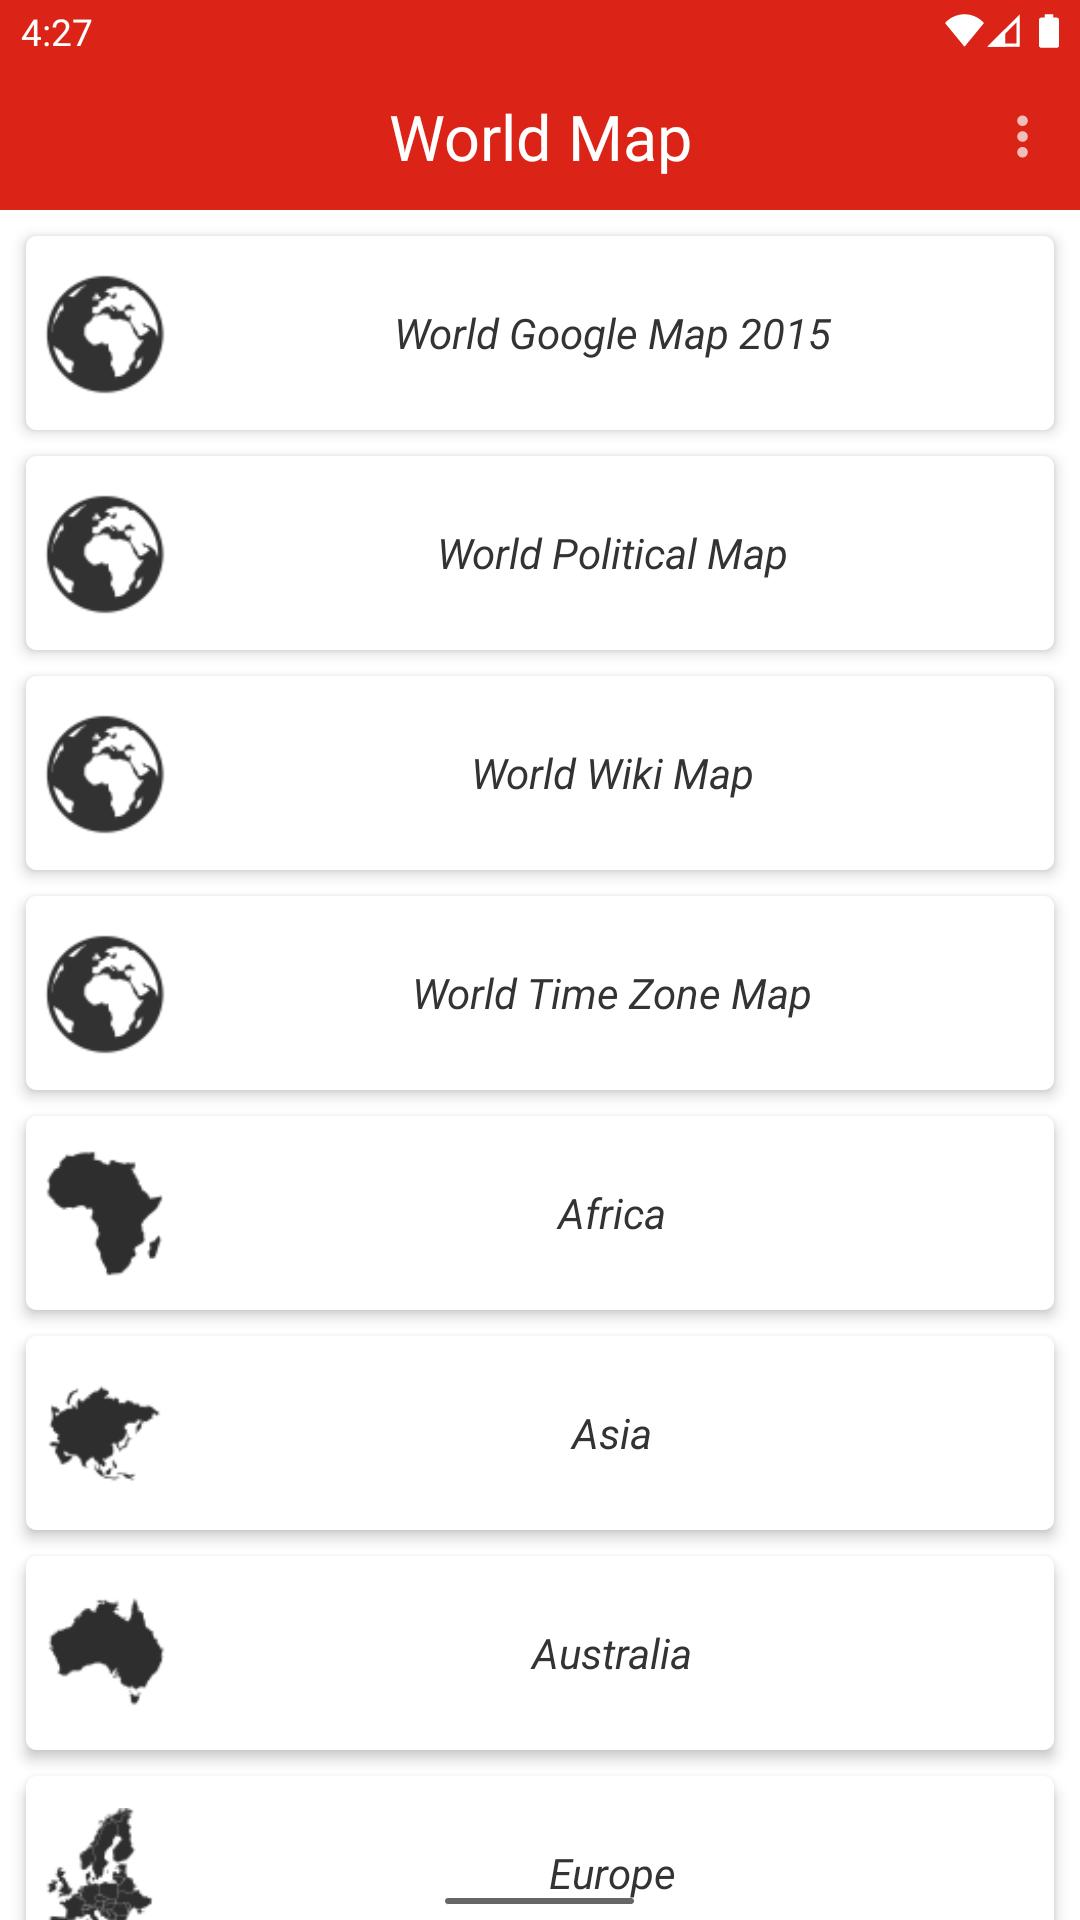 World Fline Map For Android APK Download